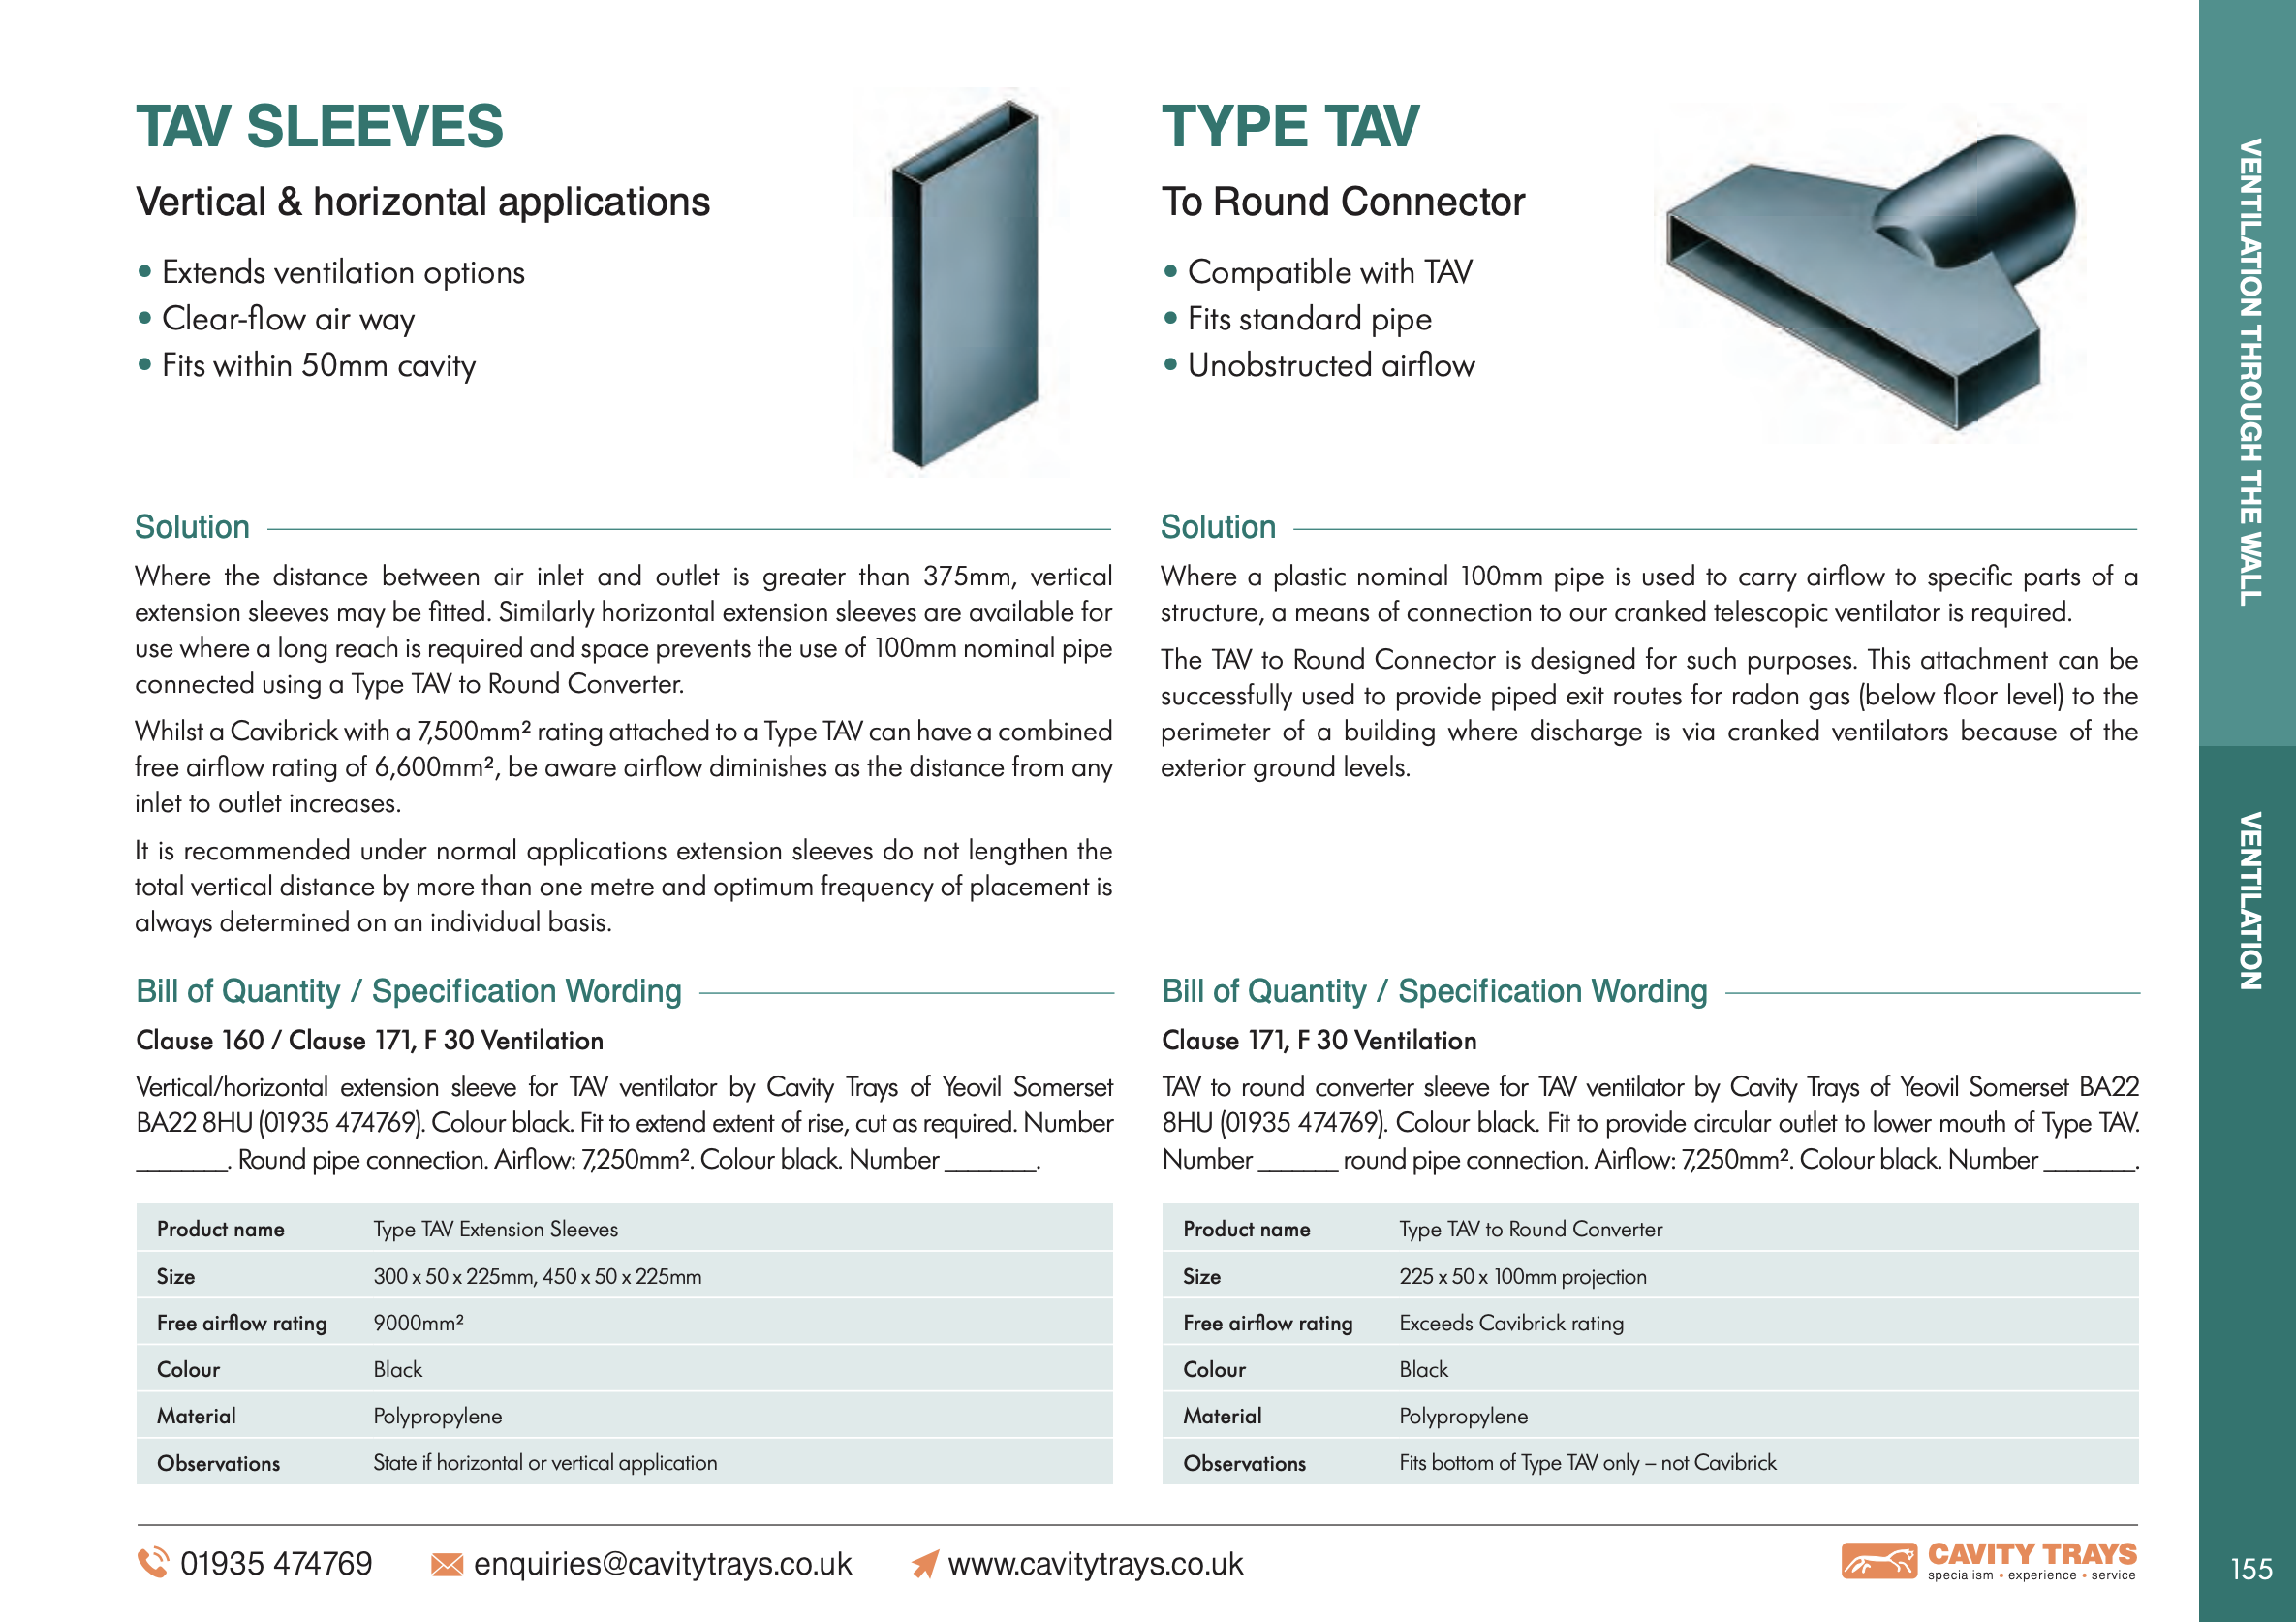 Extension Sleeves Vertical and Horizontal Datasheet